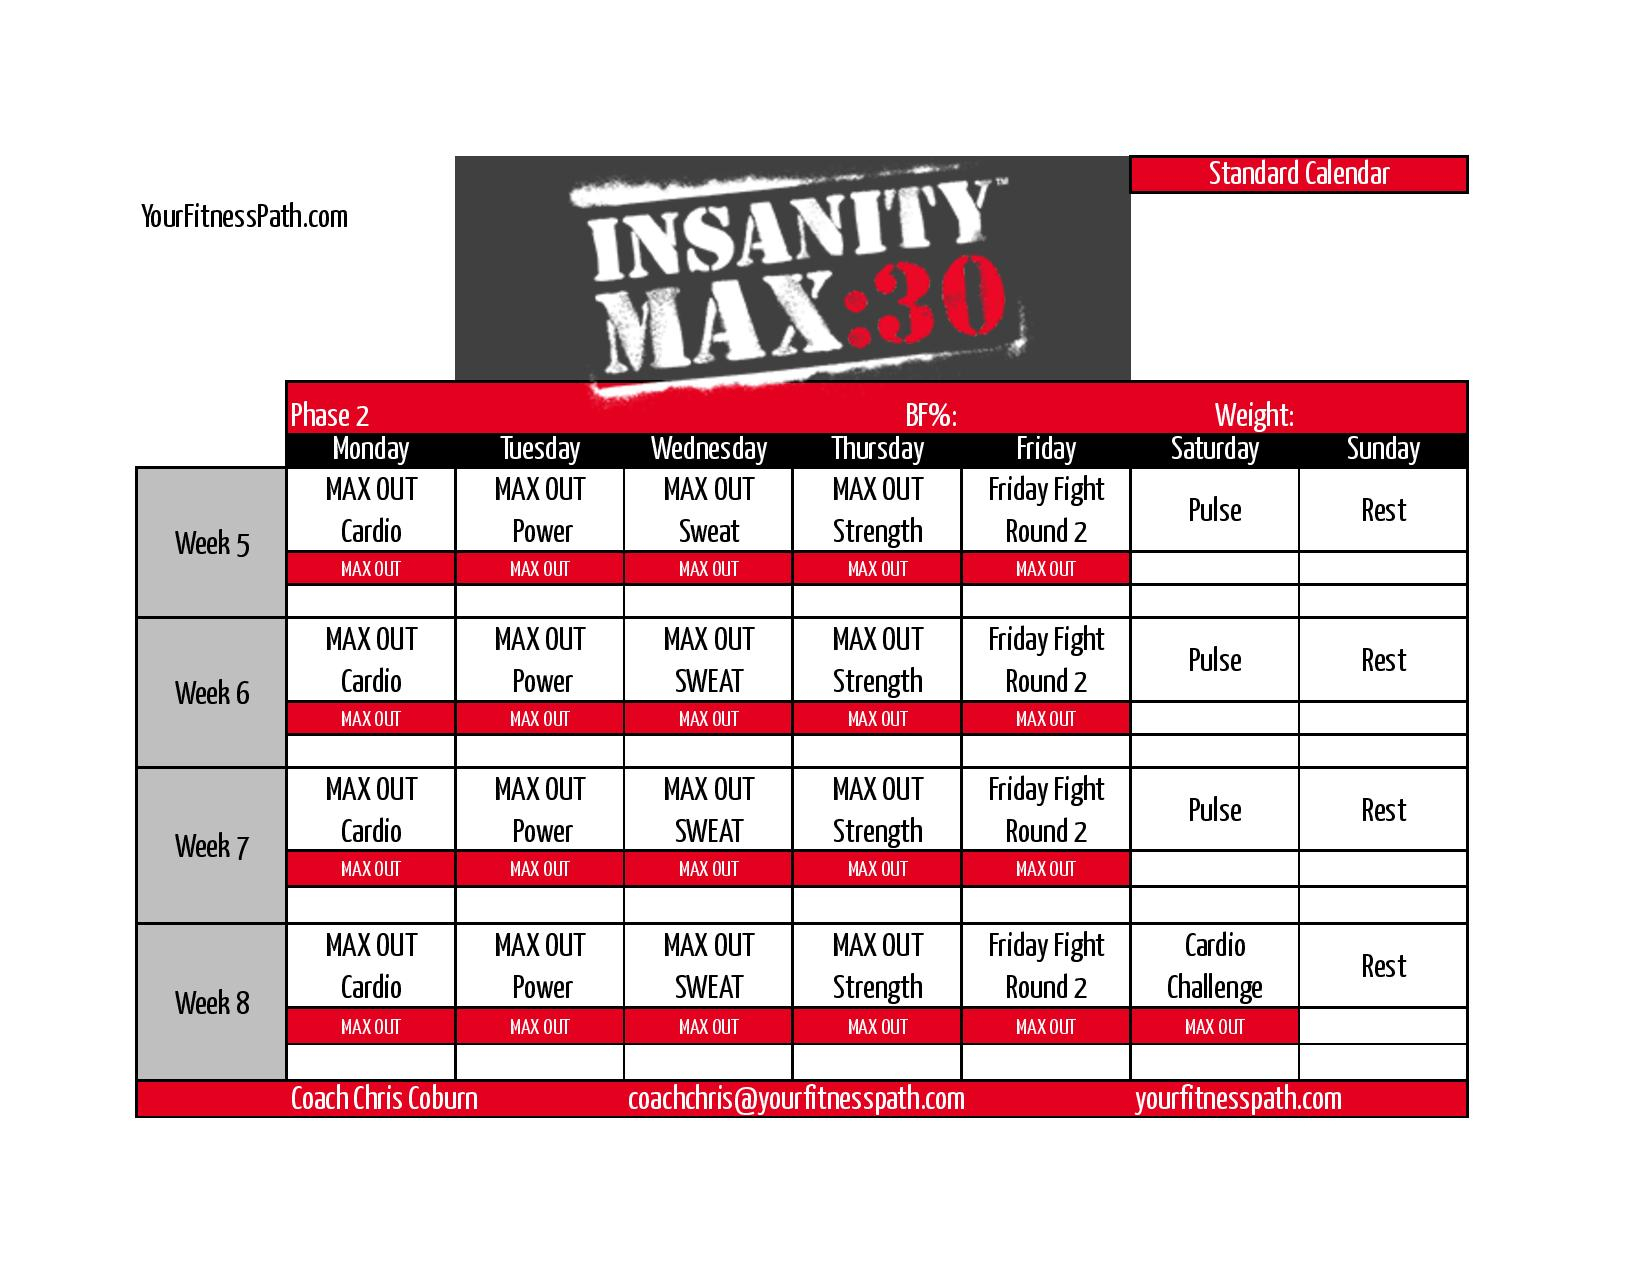 ✅Insanity Max 30 Calendar  You Calendars throughout Insanity Max 30 Calendar Month 2